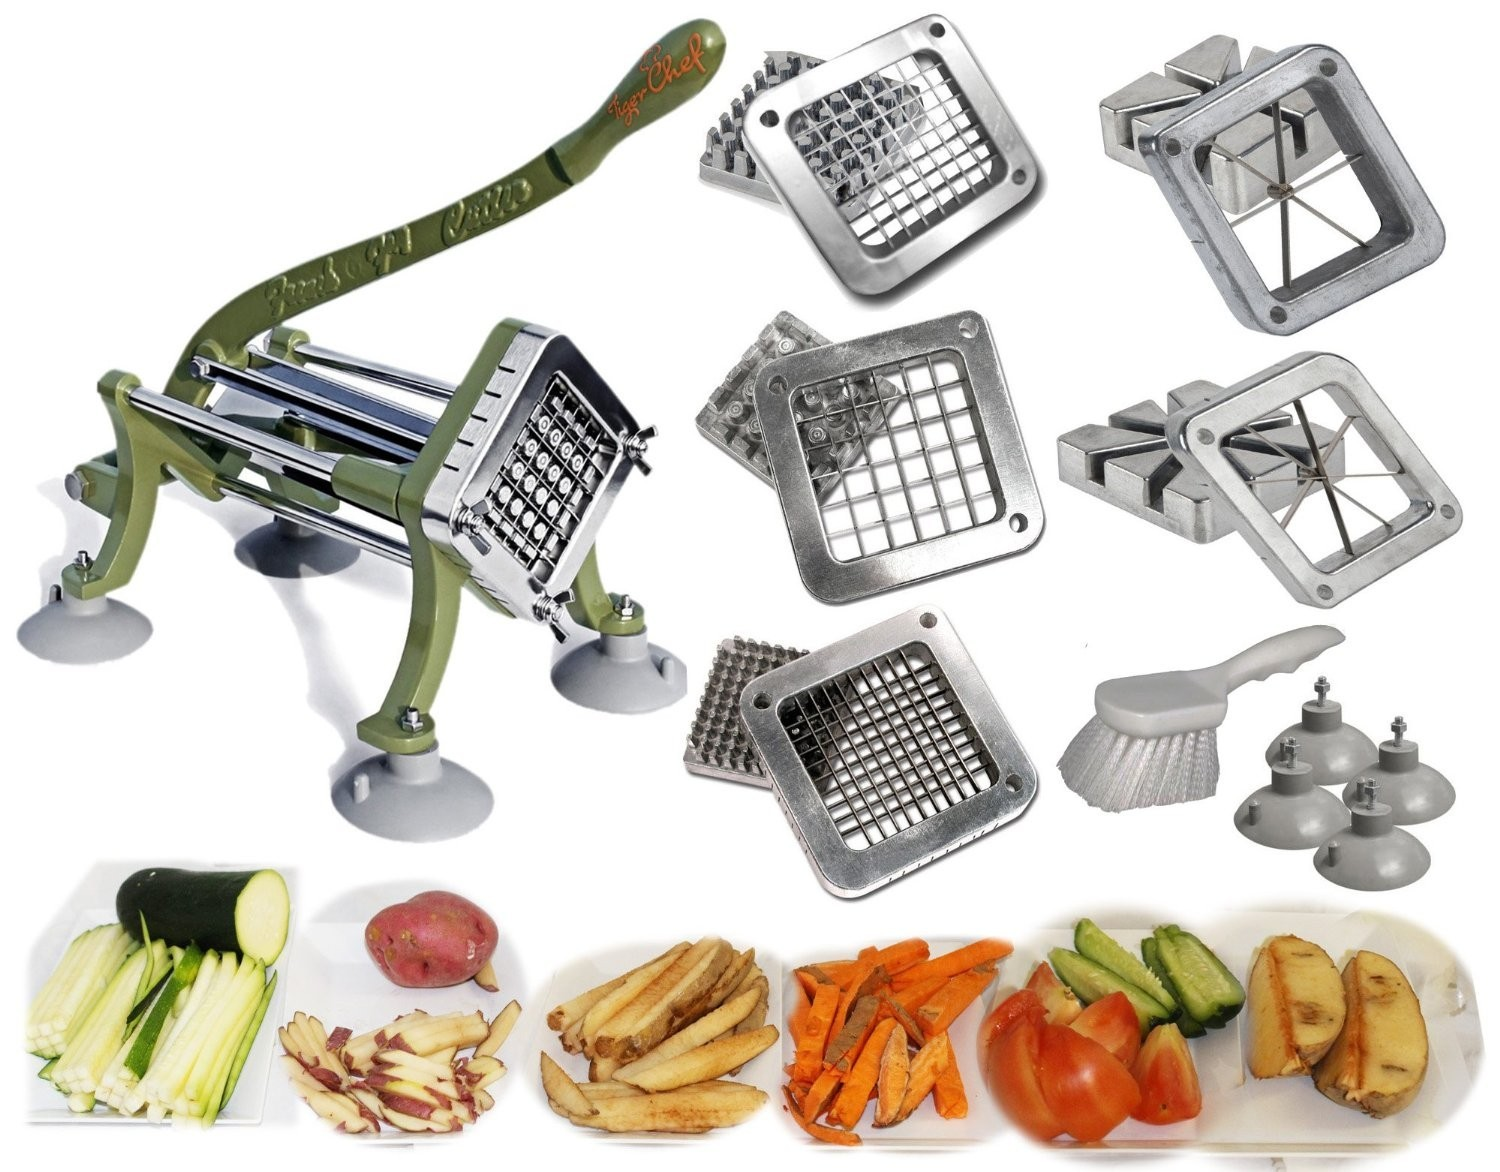 TigerChef Complete Set, Heavy Duty French Fry Cutter